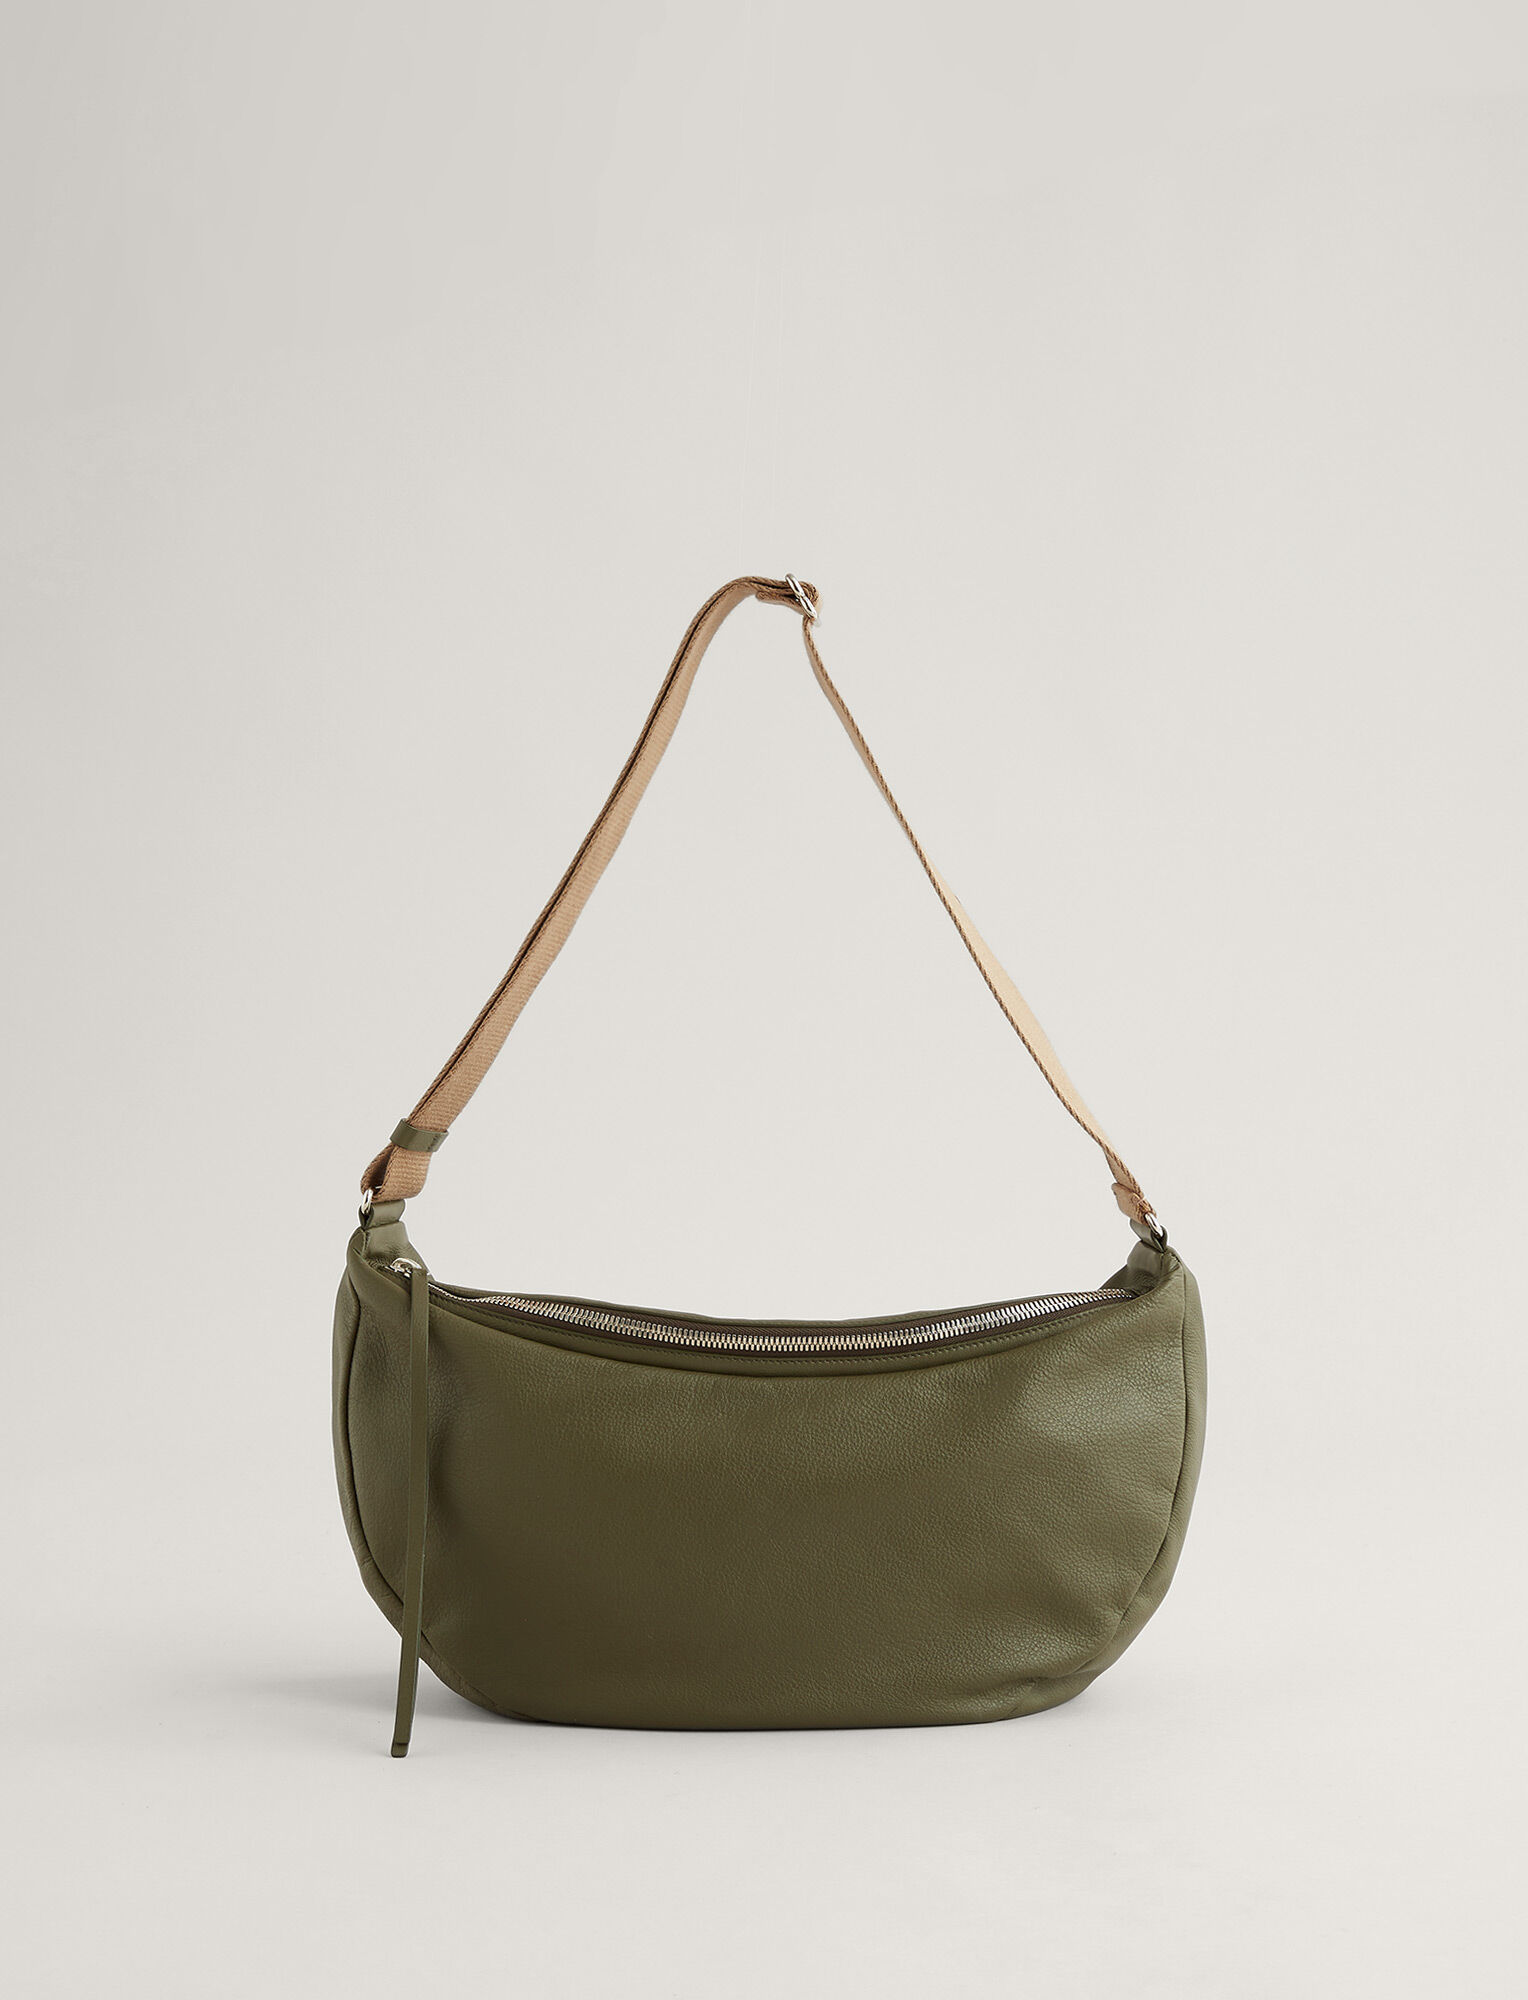 Joseph, Marylebone Leather Bag, in OLIVE